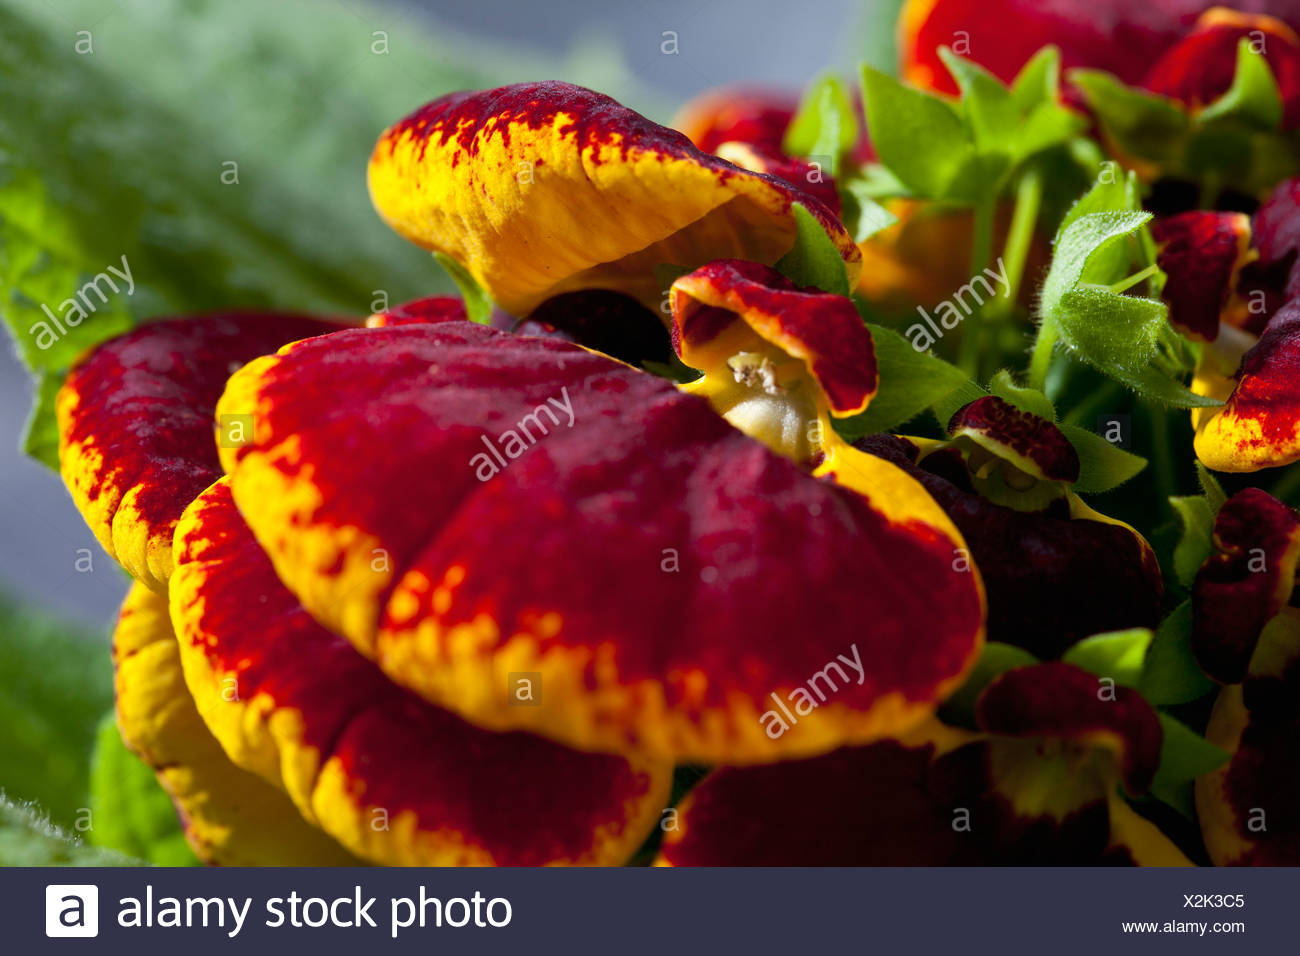 Red And Yellow Slipper Flowers Close Up Stock Photo 277014981 Alamy